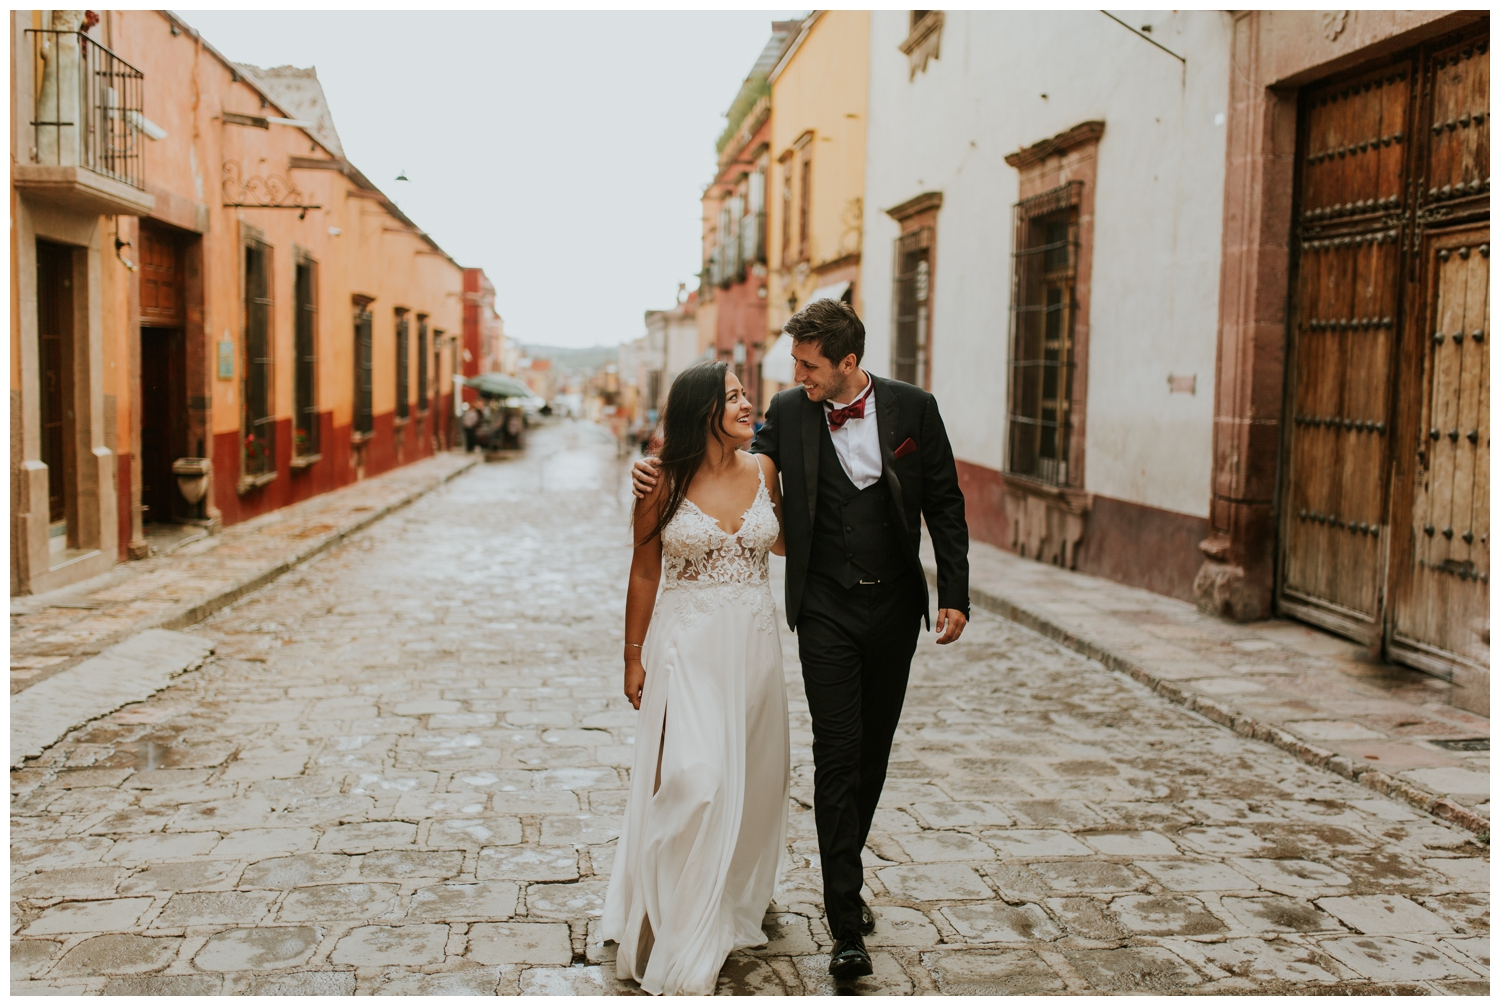 Shane+Sofia, San Miguel de Allende Wedding, Mexico Wedding, Contista Productions Wedding Photography_0214.jpg